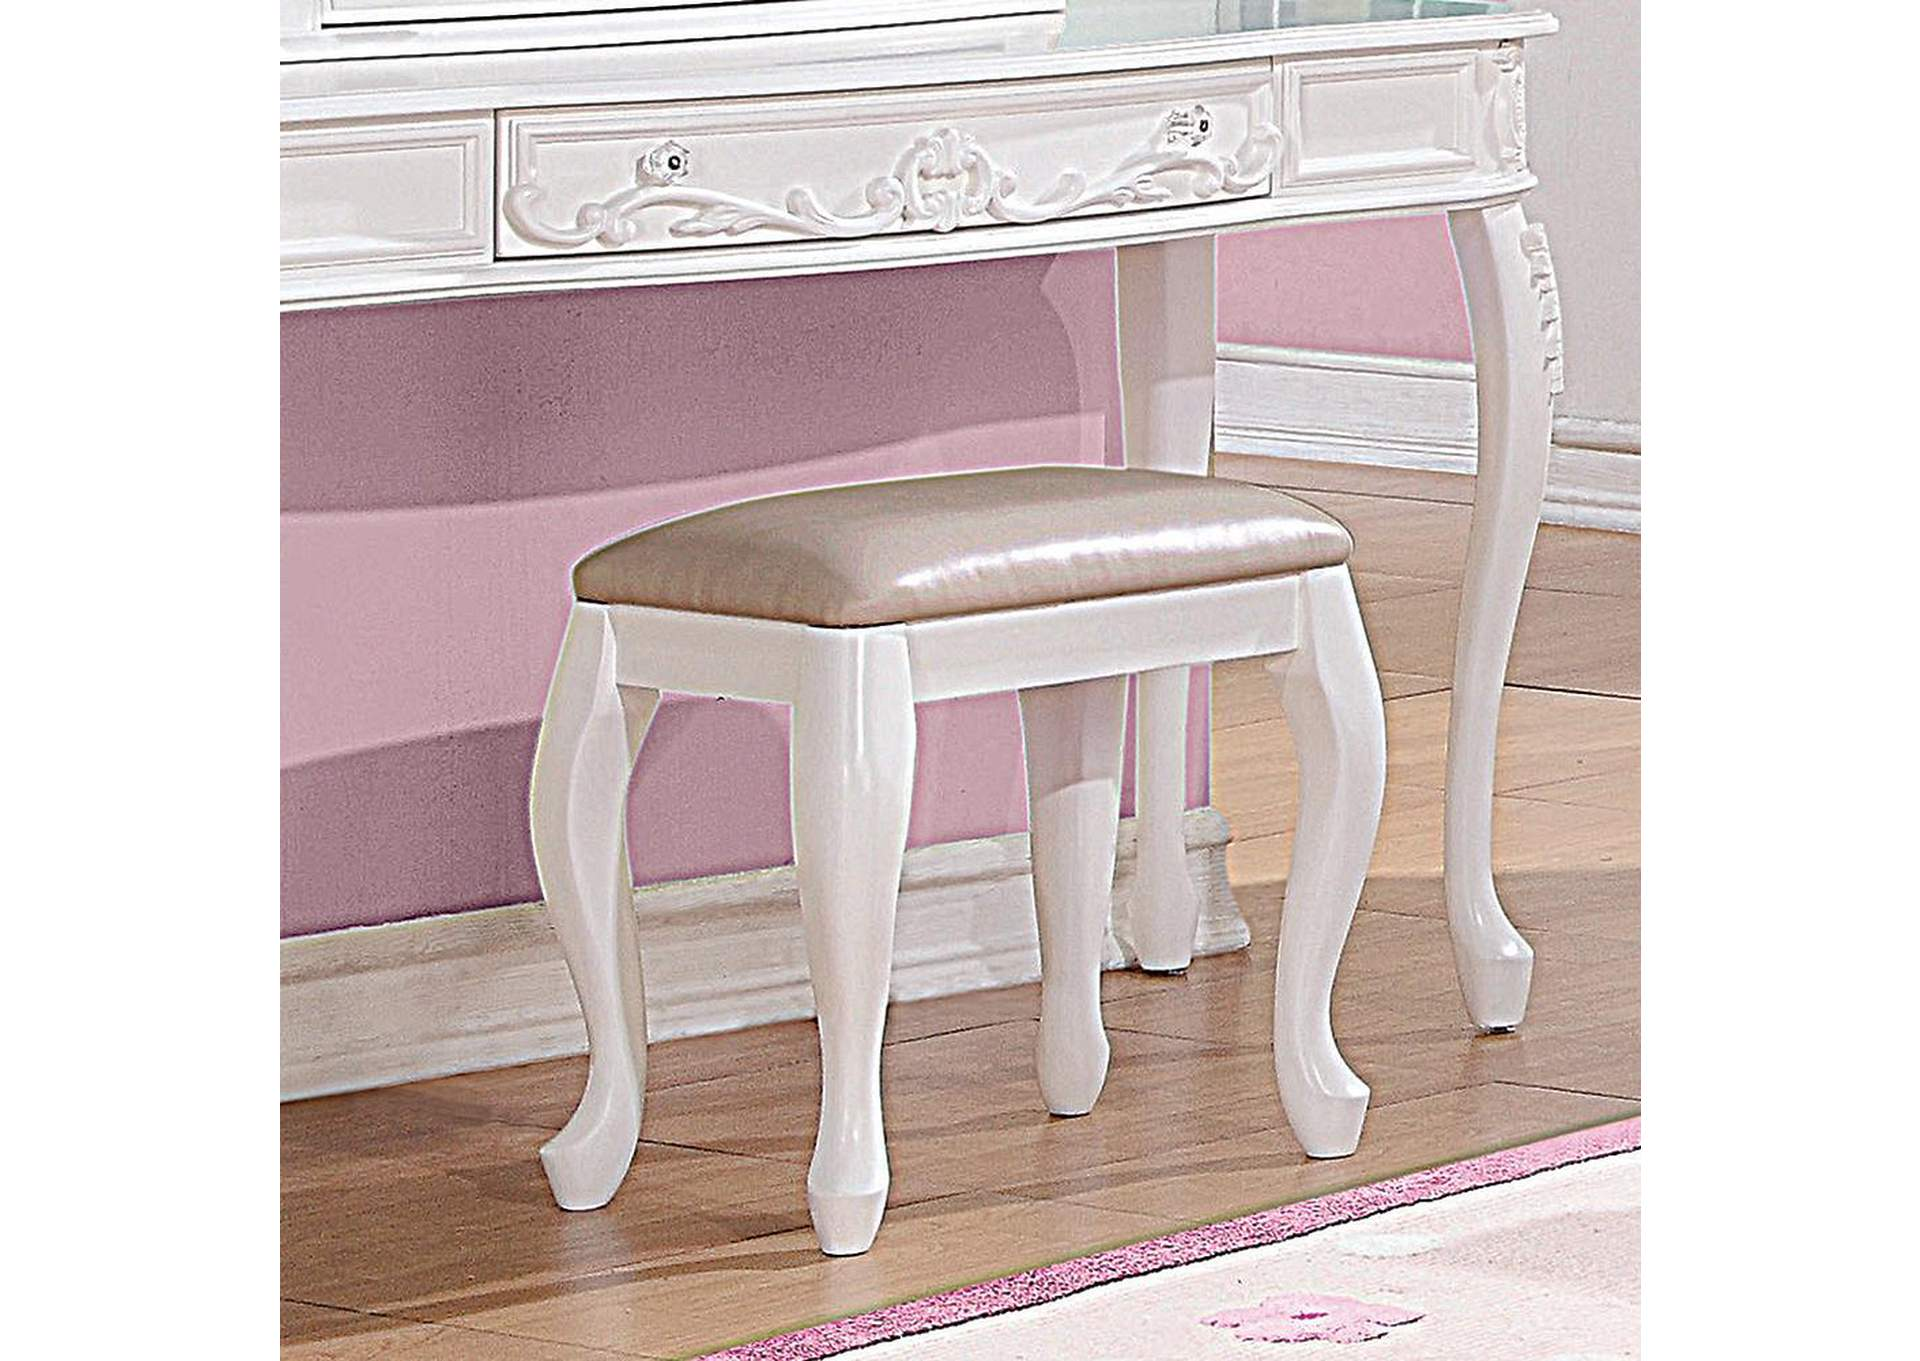 Caroline White Stool,Coaster Furniture